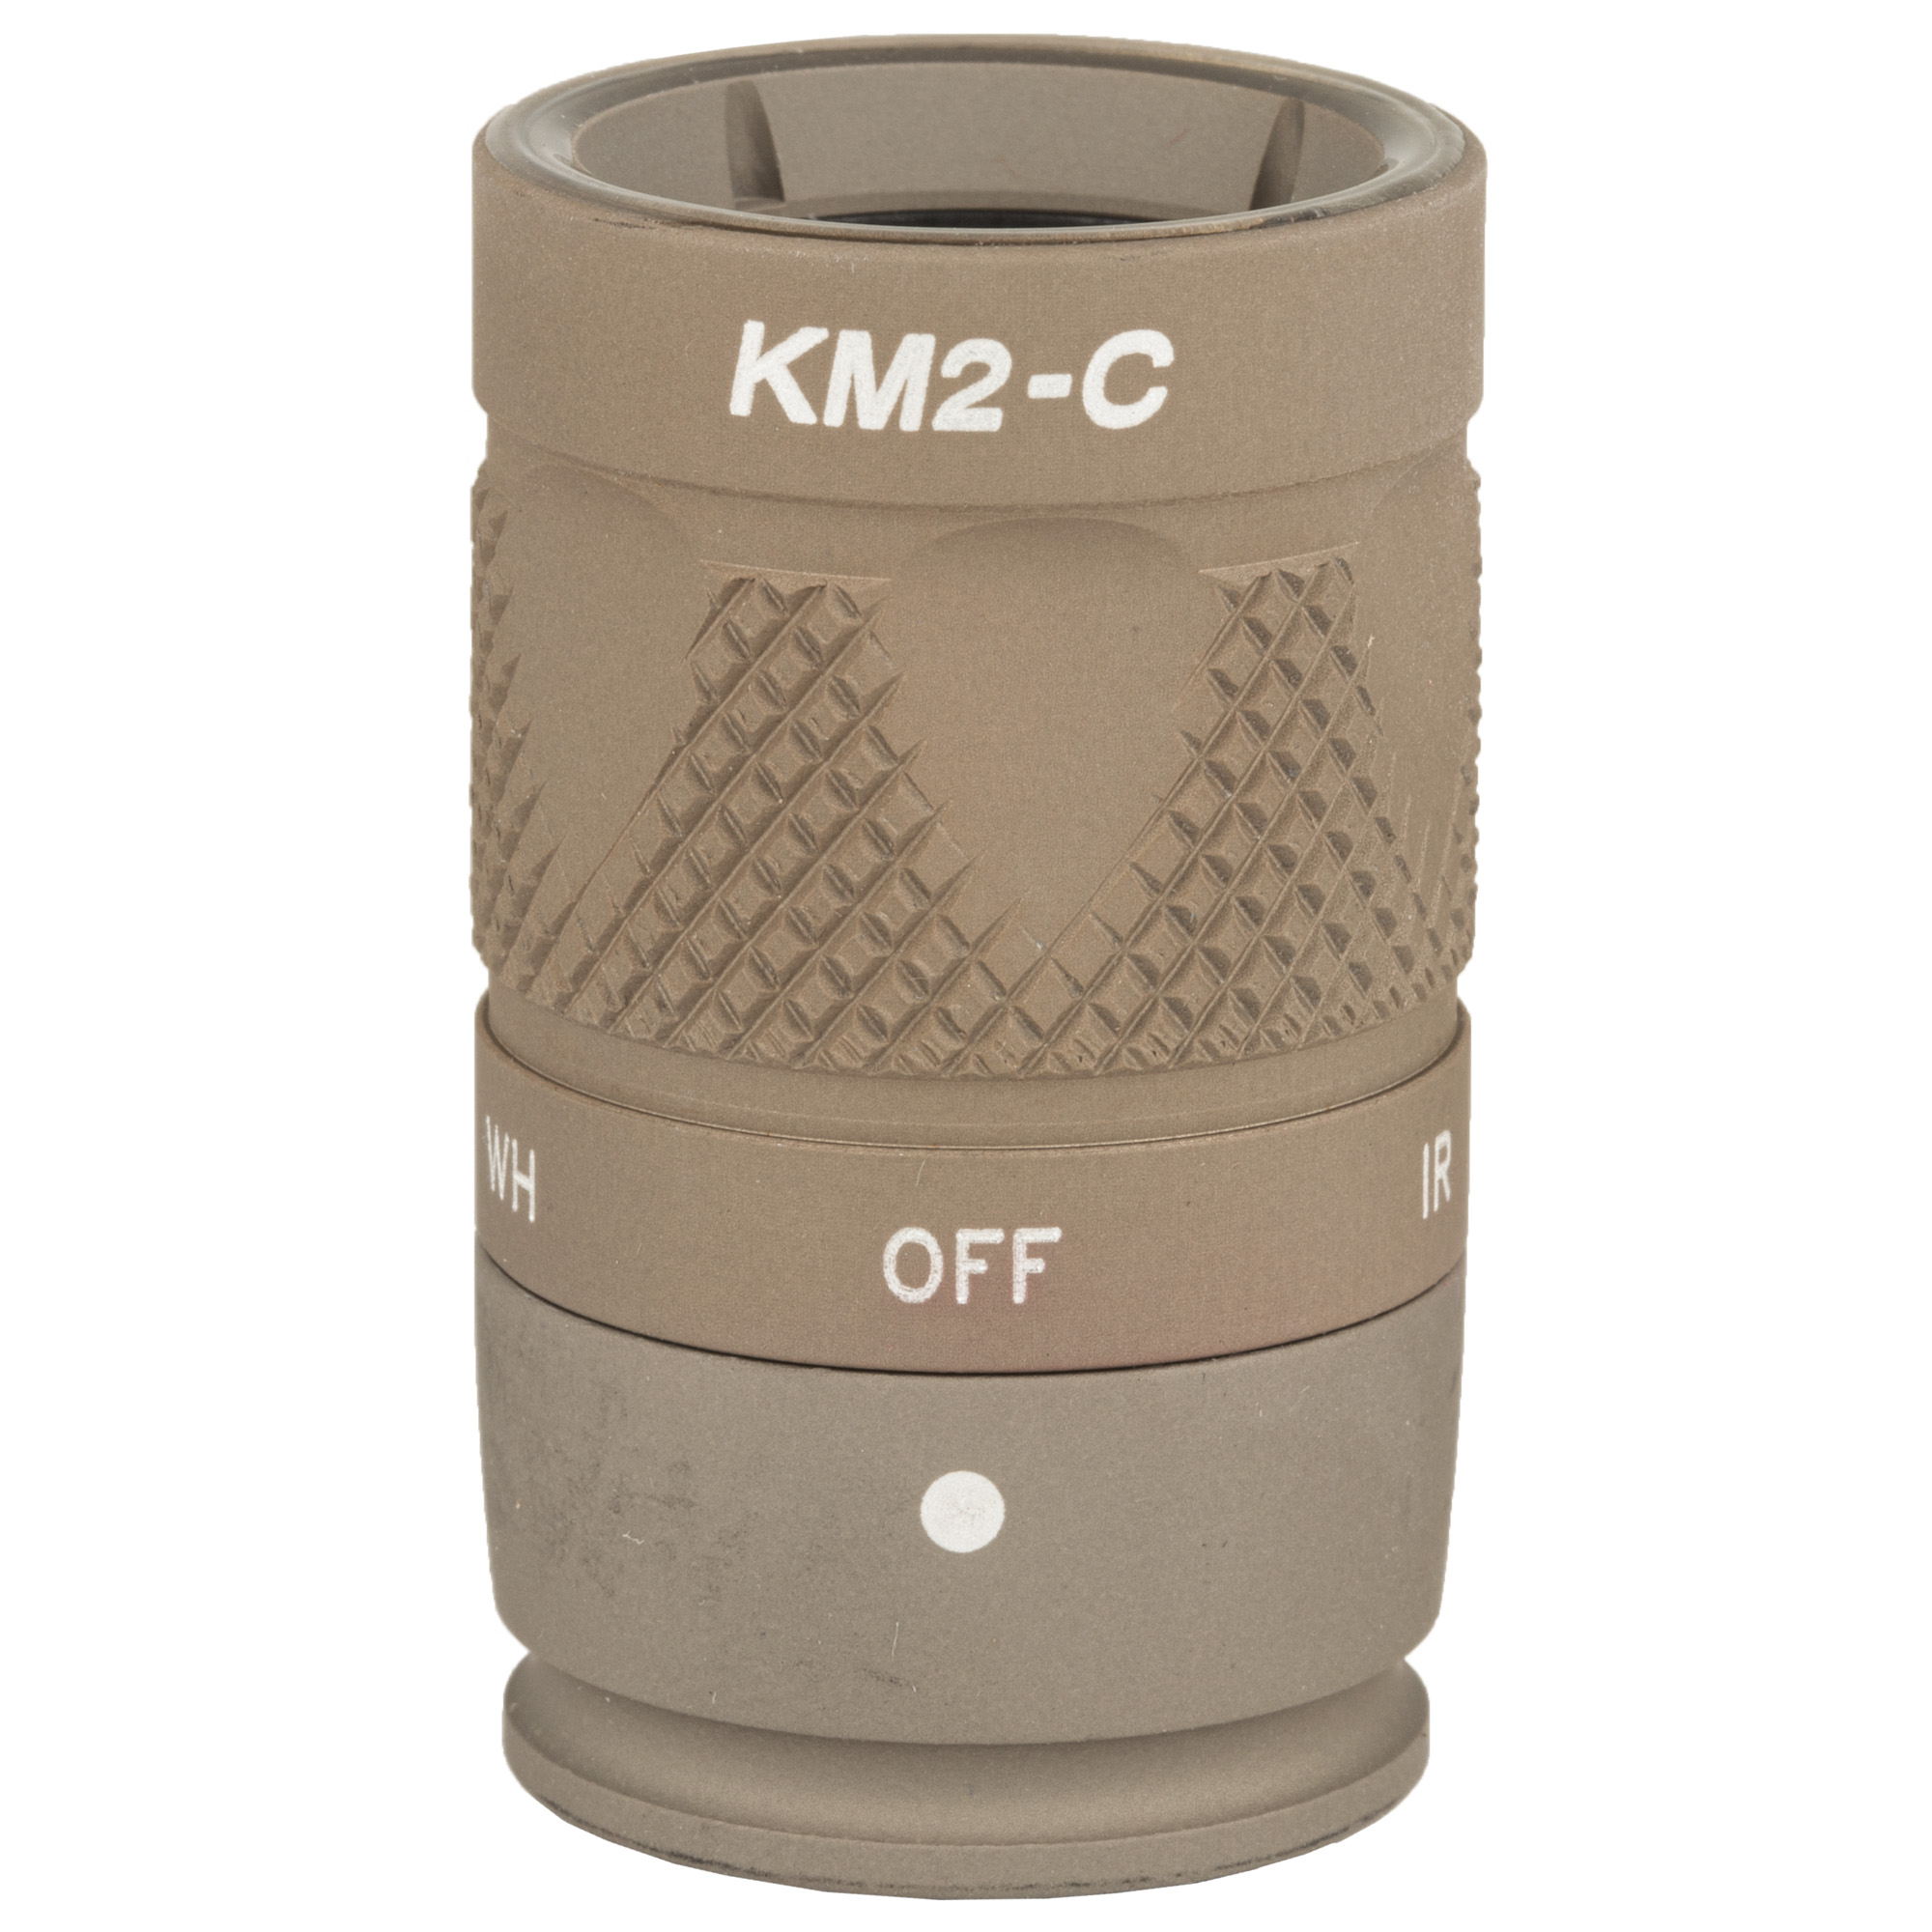 """The KM2 bezel assembly provides both white light and infrared illumination from two 123A batteries when used on an M600 Scout Light(R). Select the appropriate spectrum for the mission by simply rotating the bezel. This small"""" rugged Weapon Light features SureFire's proprietary TIR lens"""" a far-reaching"""" high-intensity beam with ample surround light. Upgrade your Scout Light(R) to 350 lumens and 120 mW of infrared illumination with the KM2."""